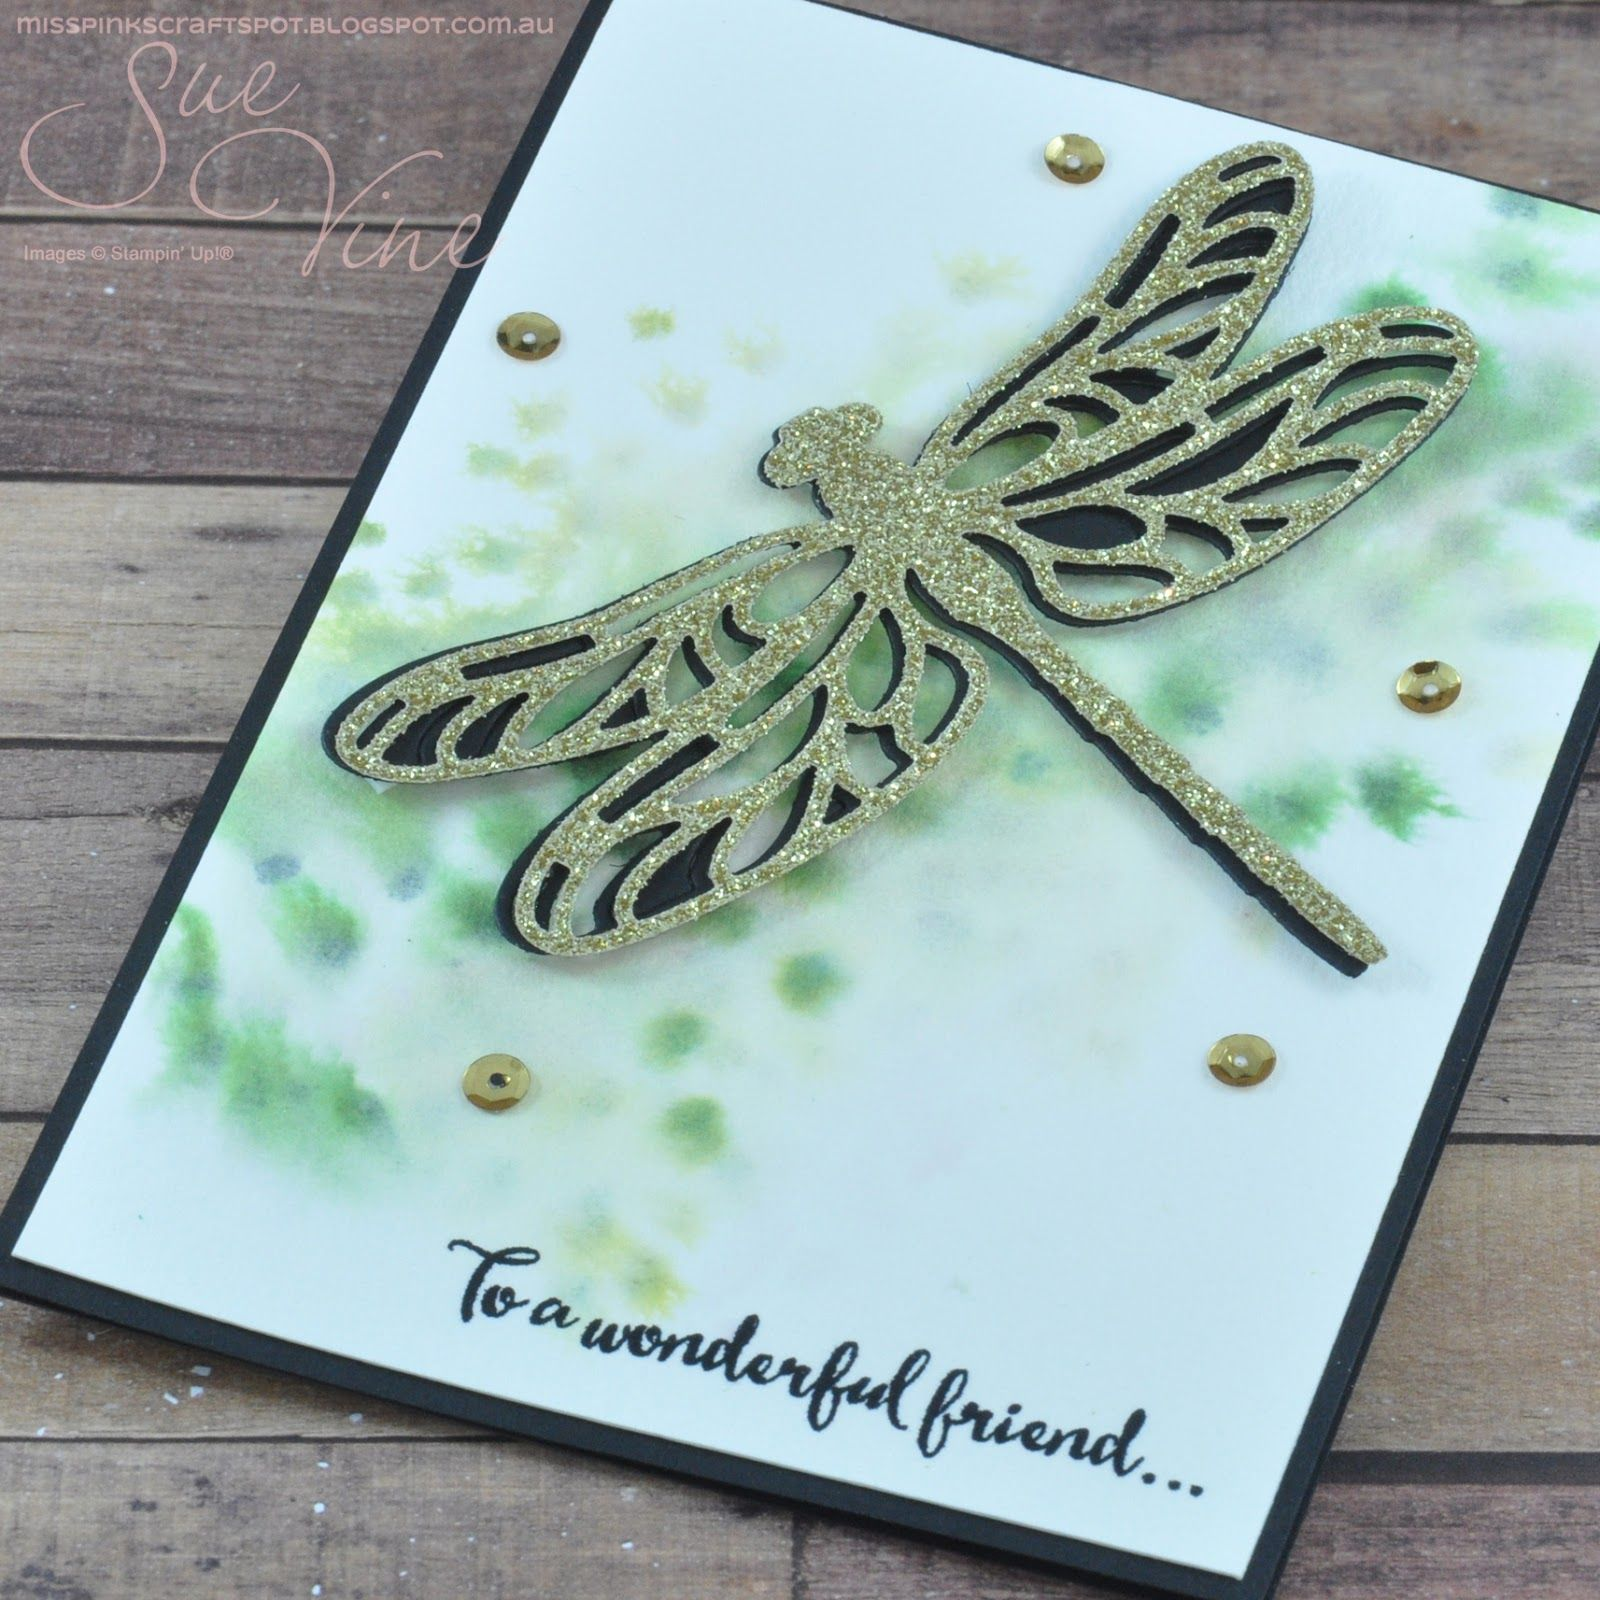 Miss pinks craft spot featuring stampin up products by sue vine miss pinks craft spot dragonfly dreams with a spritz jeuxipadfo Gallery